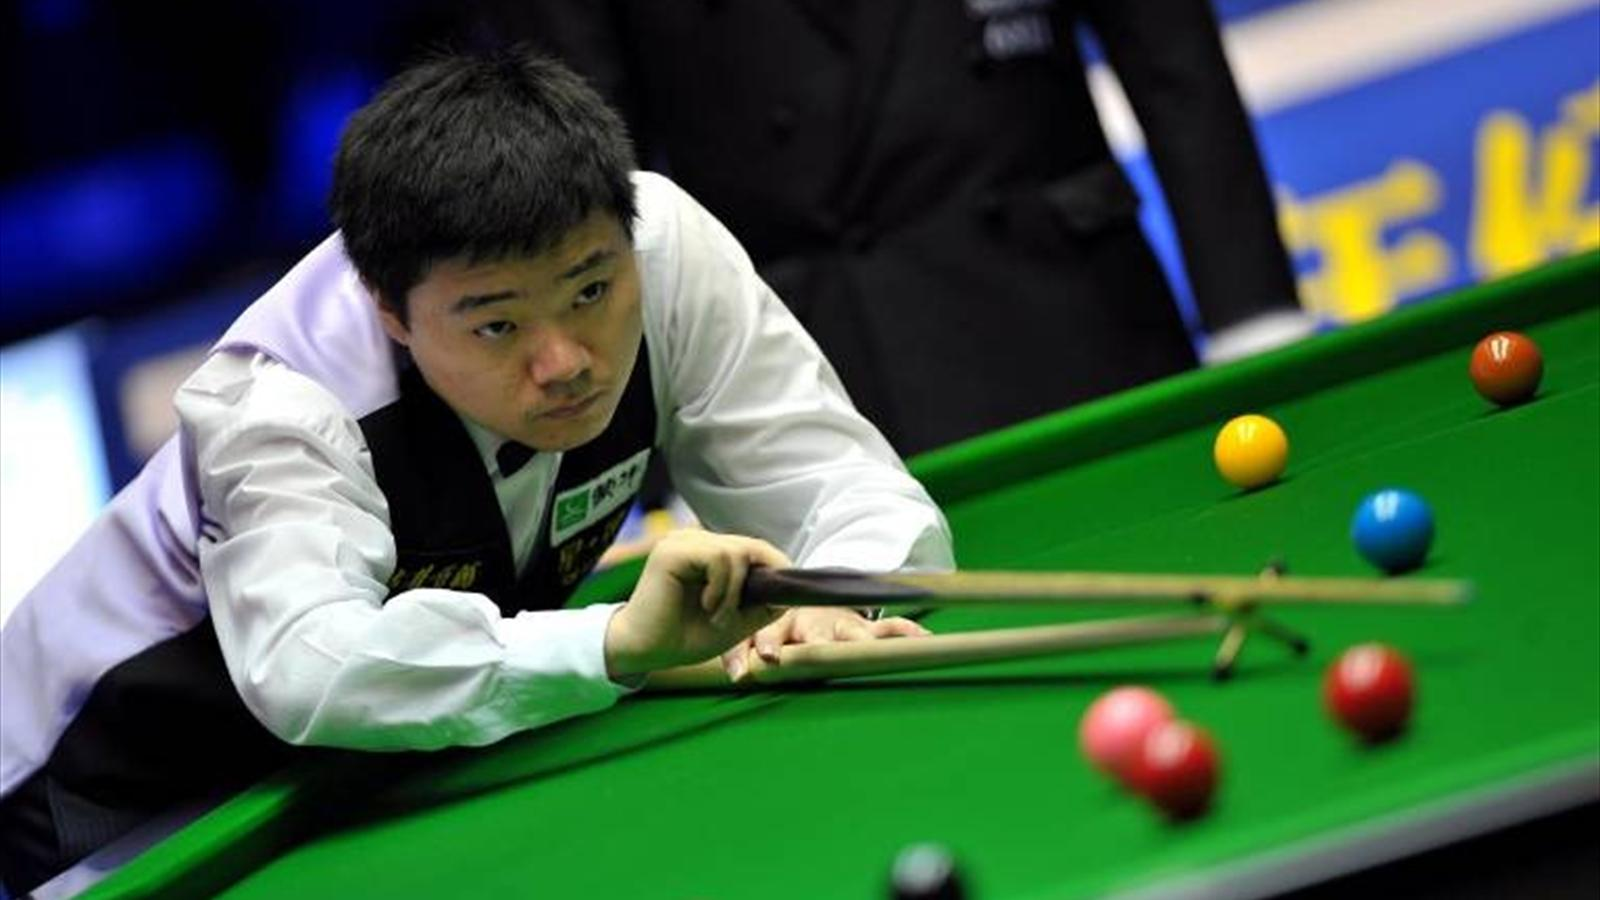 Watch and bet on the haikou world open qualifying matches today